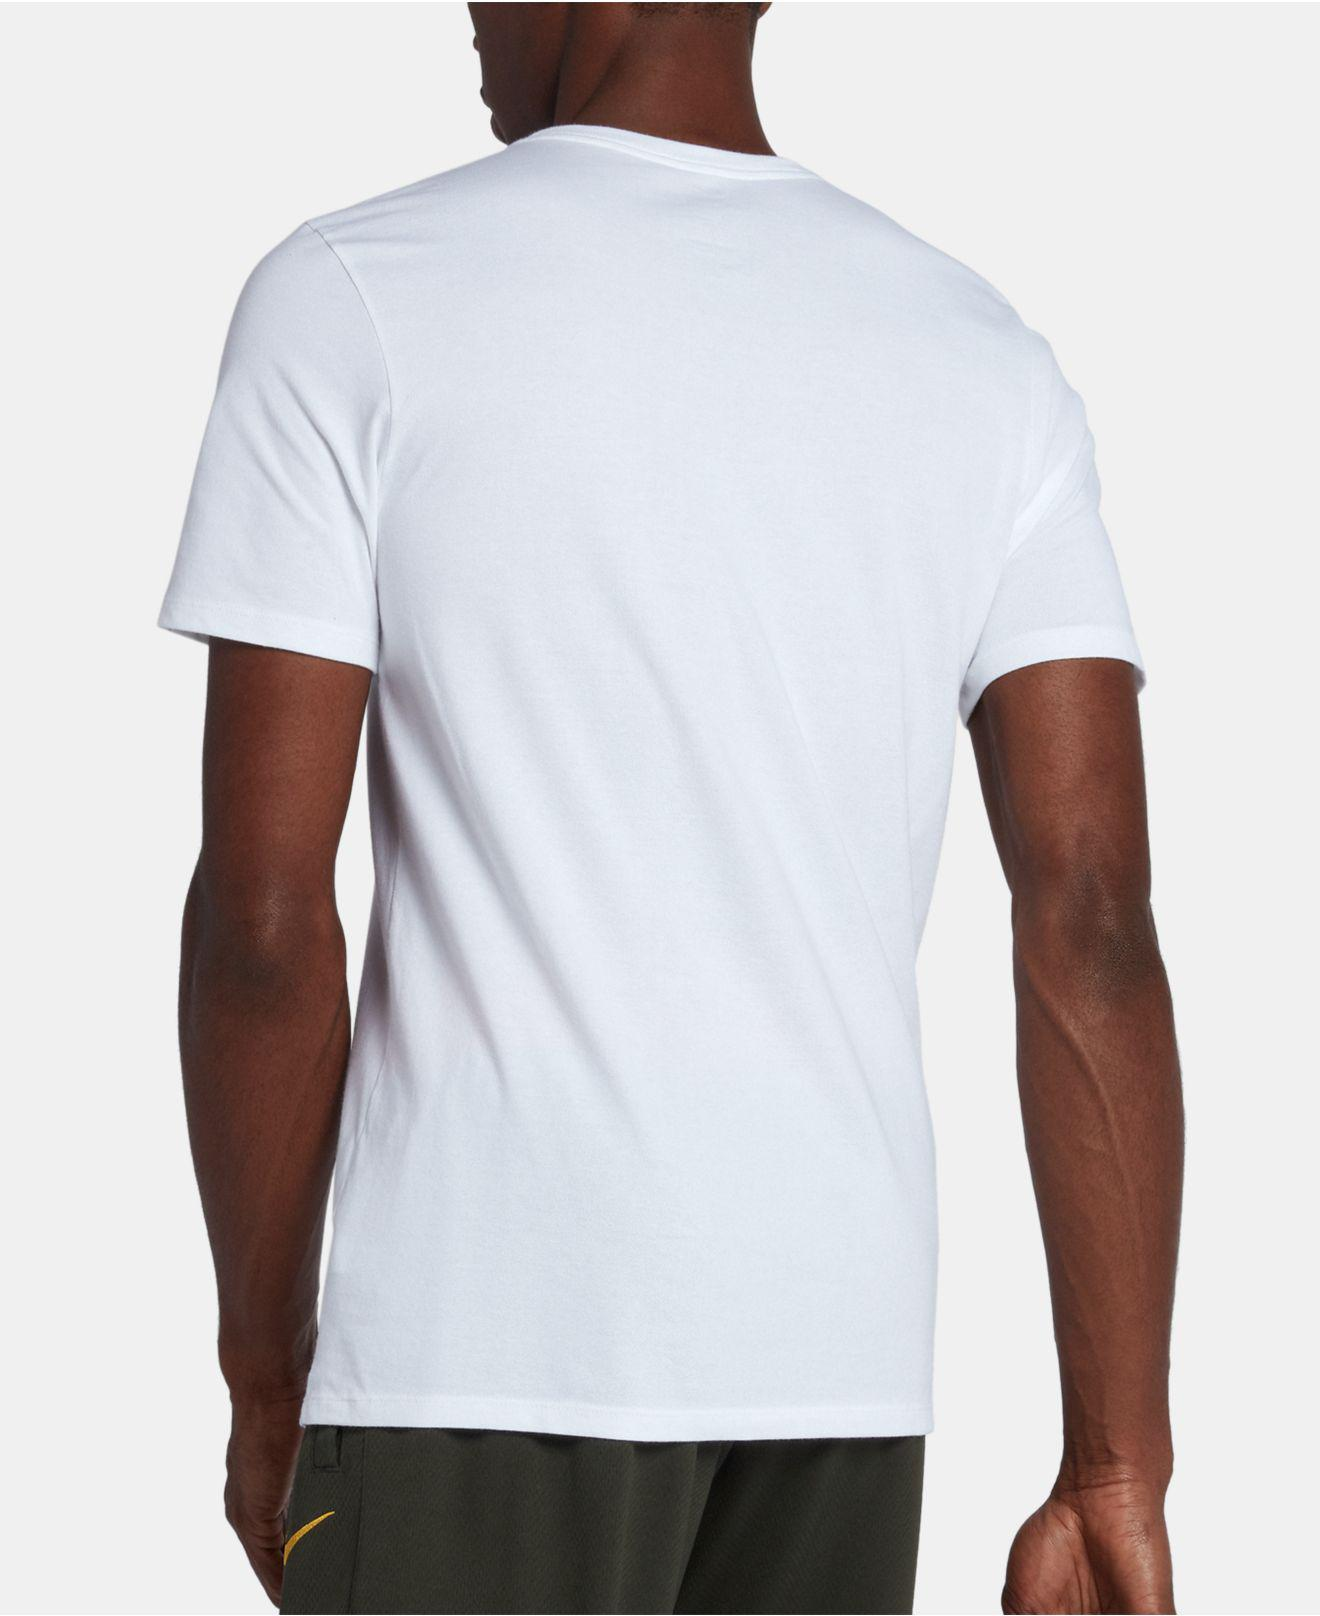 142de97f978 Lyst - Nike Just Do It Dri-fit Basketball T-shirt in White for Men